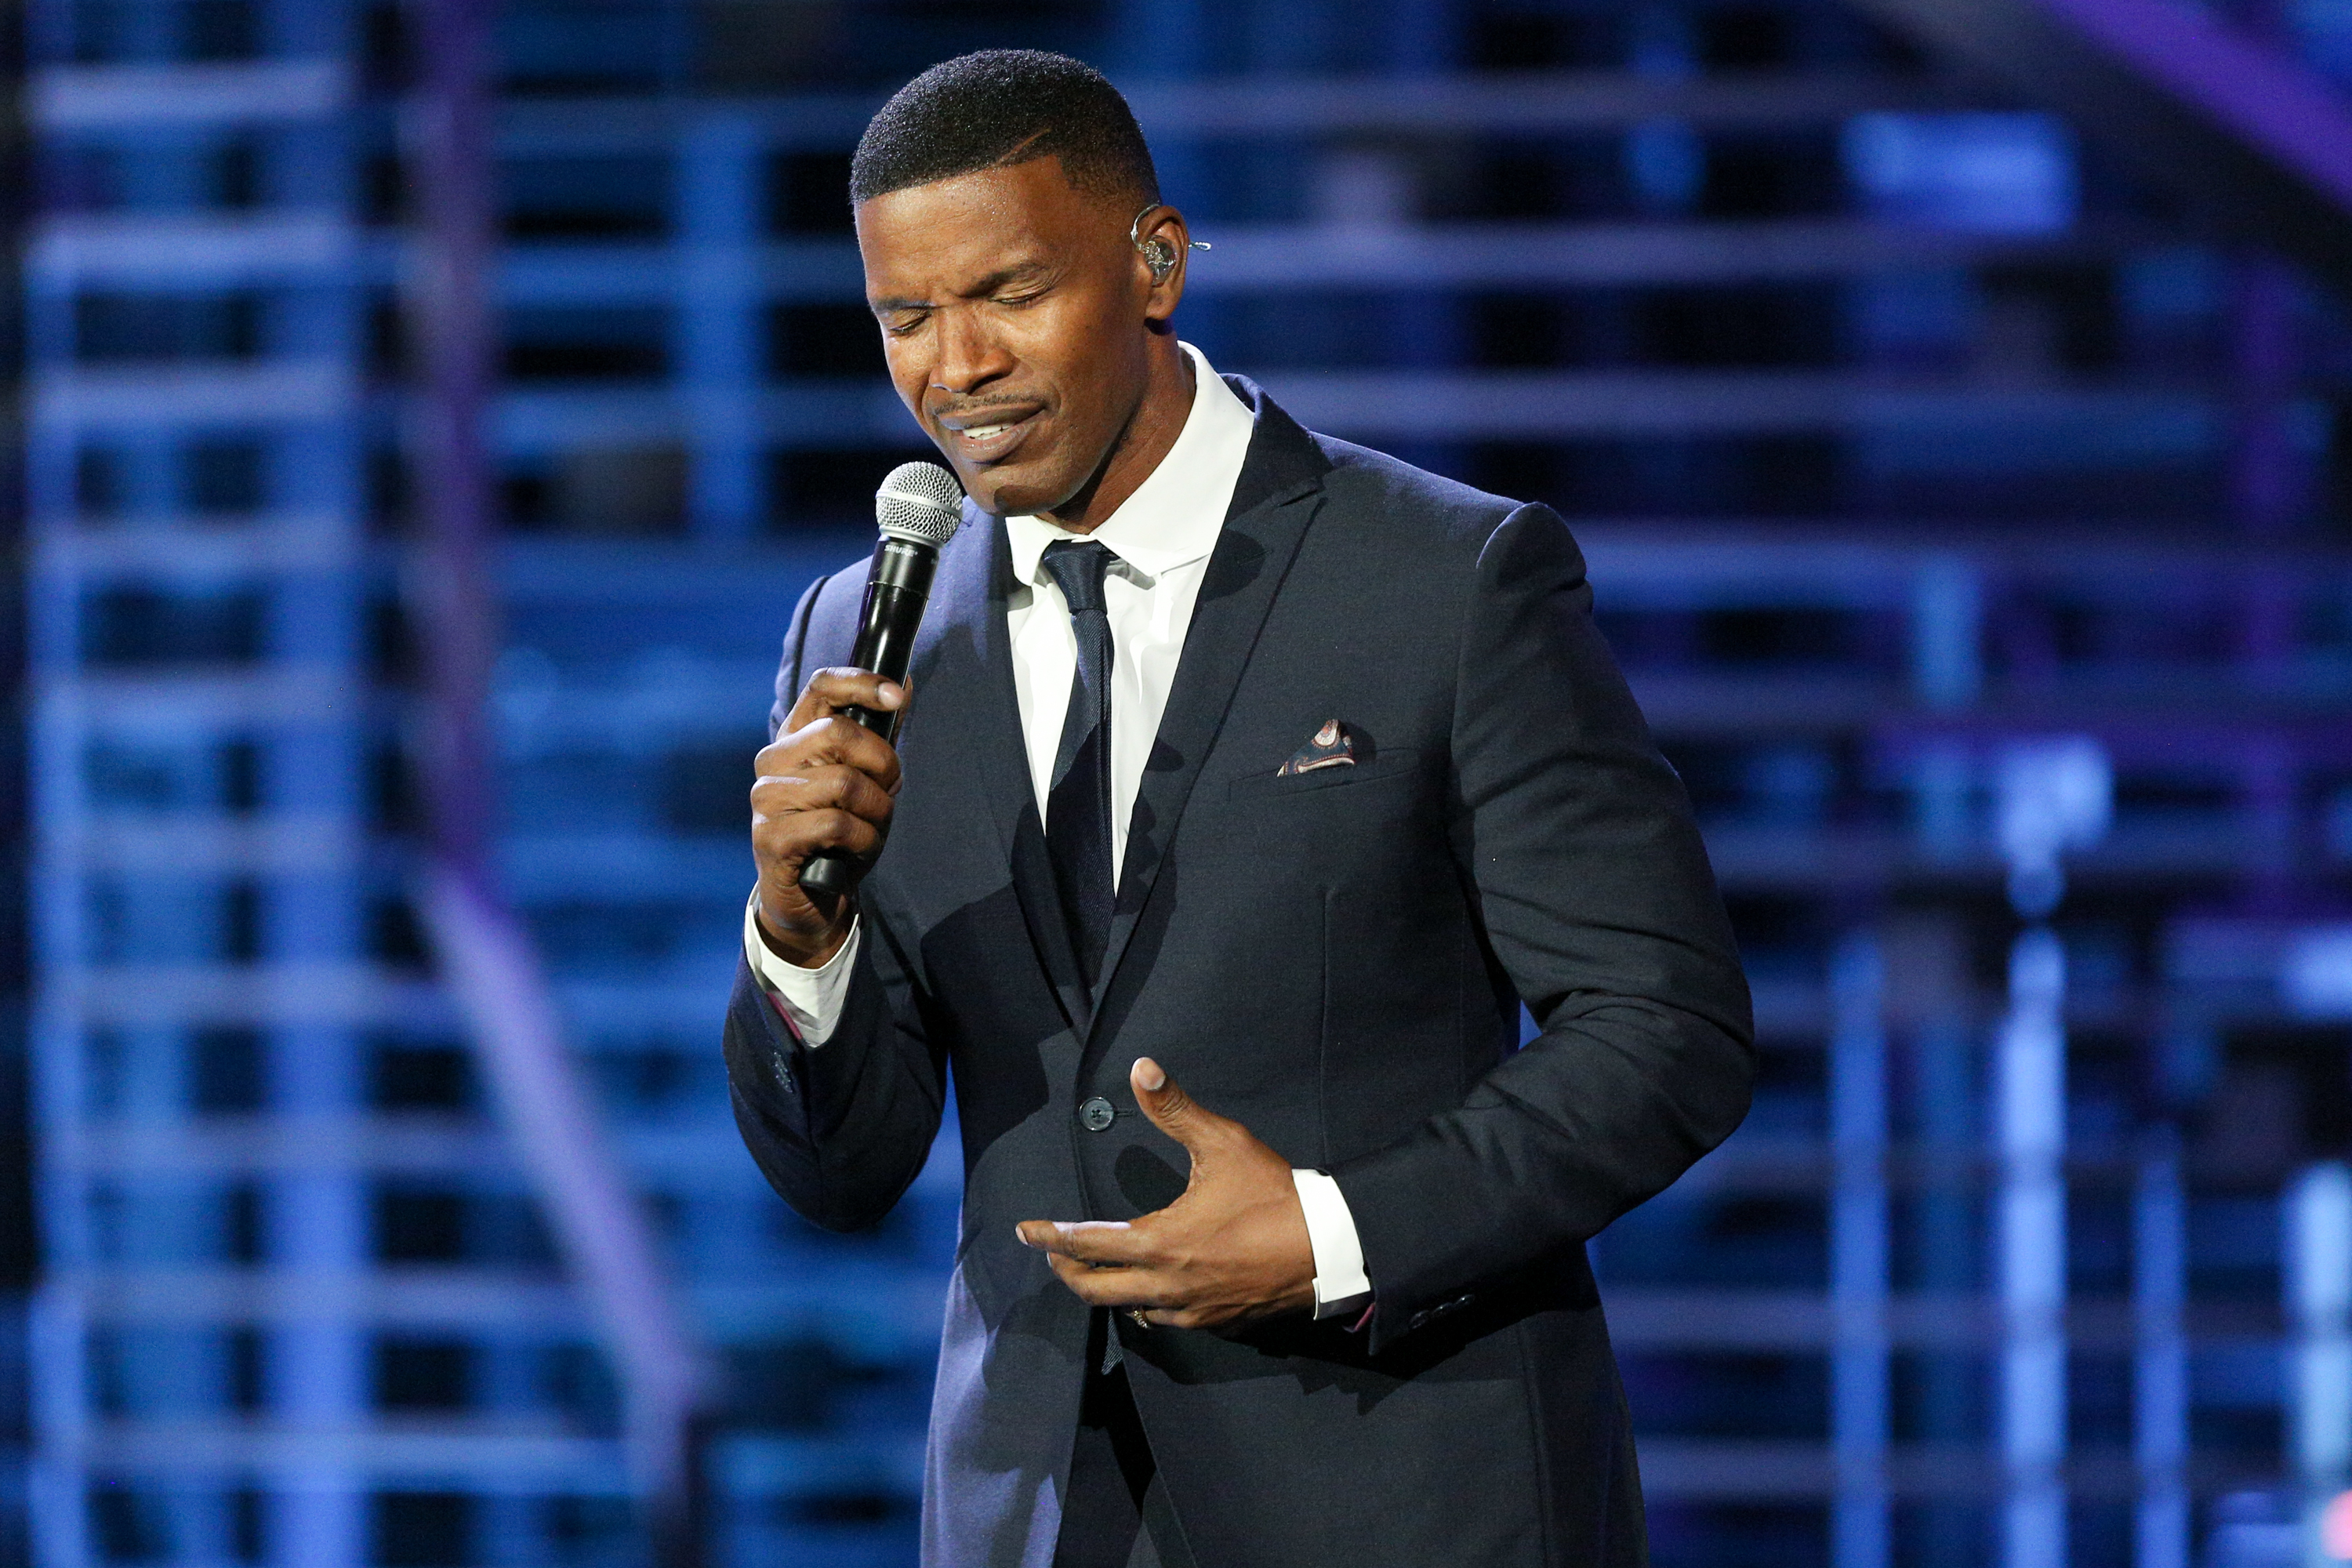 Jamie Foxx and Katie Holmes Are 'Really Great' Together, Daughter Corinne Says